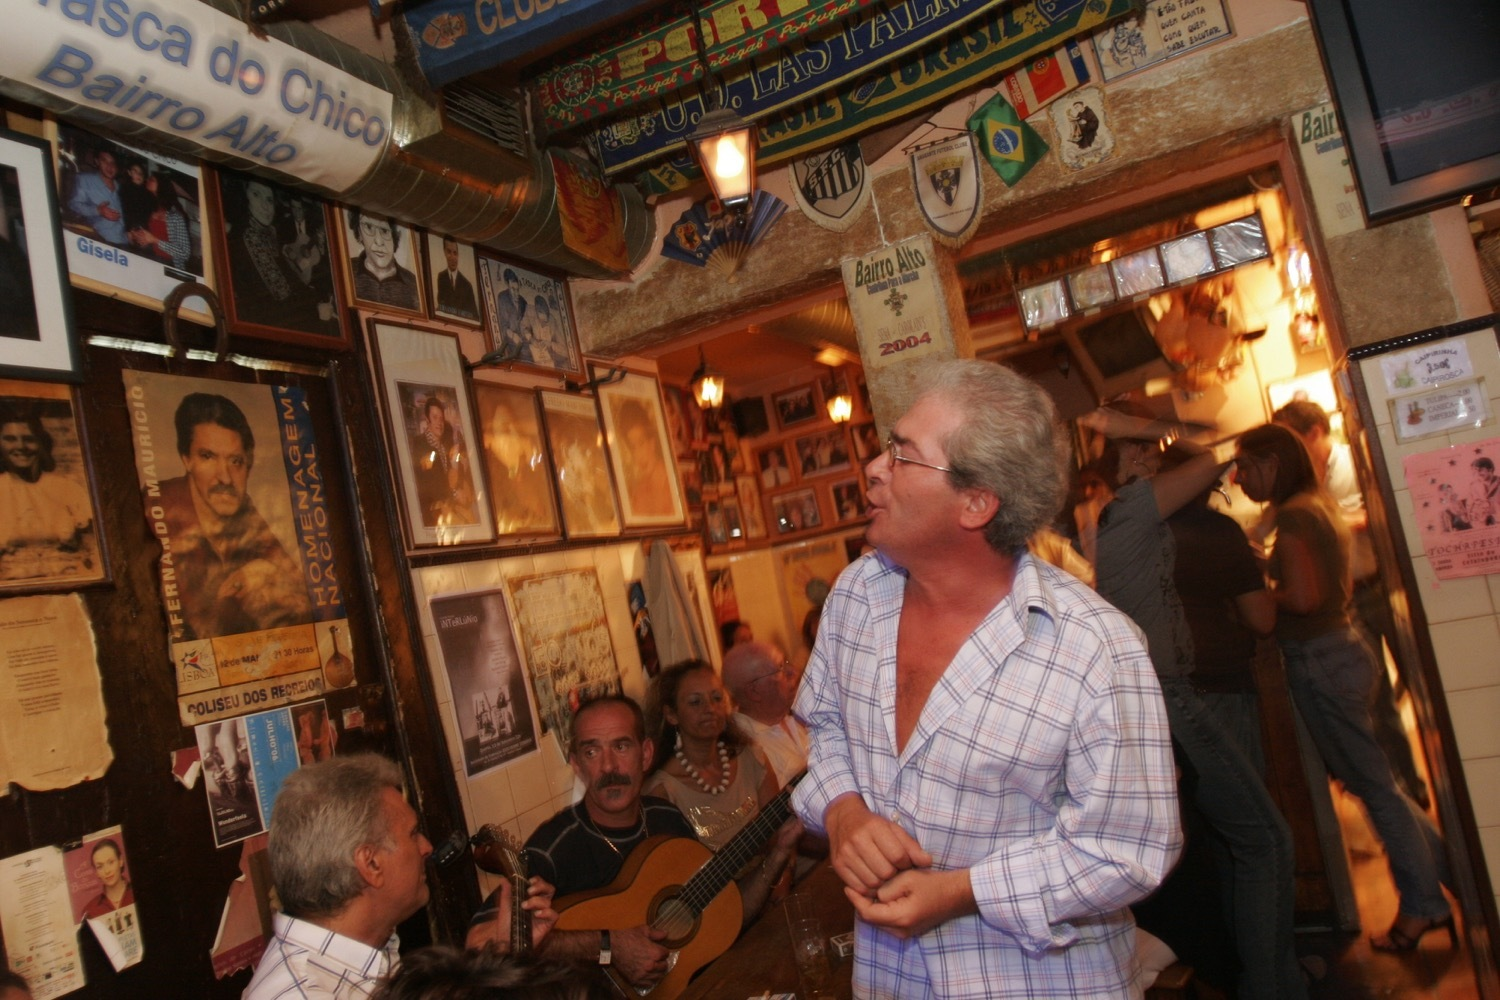 The best places to listen to fado in Lisbon